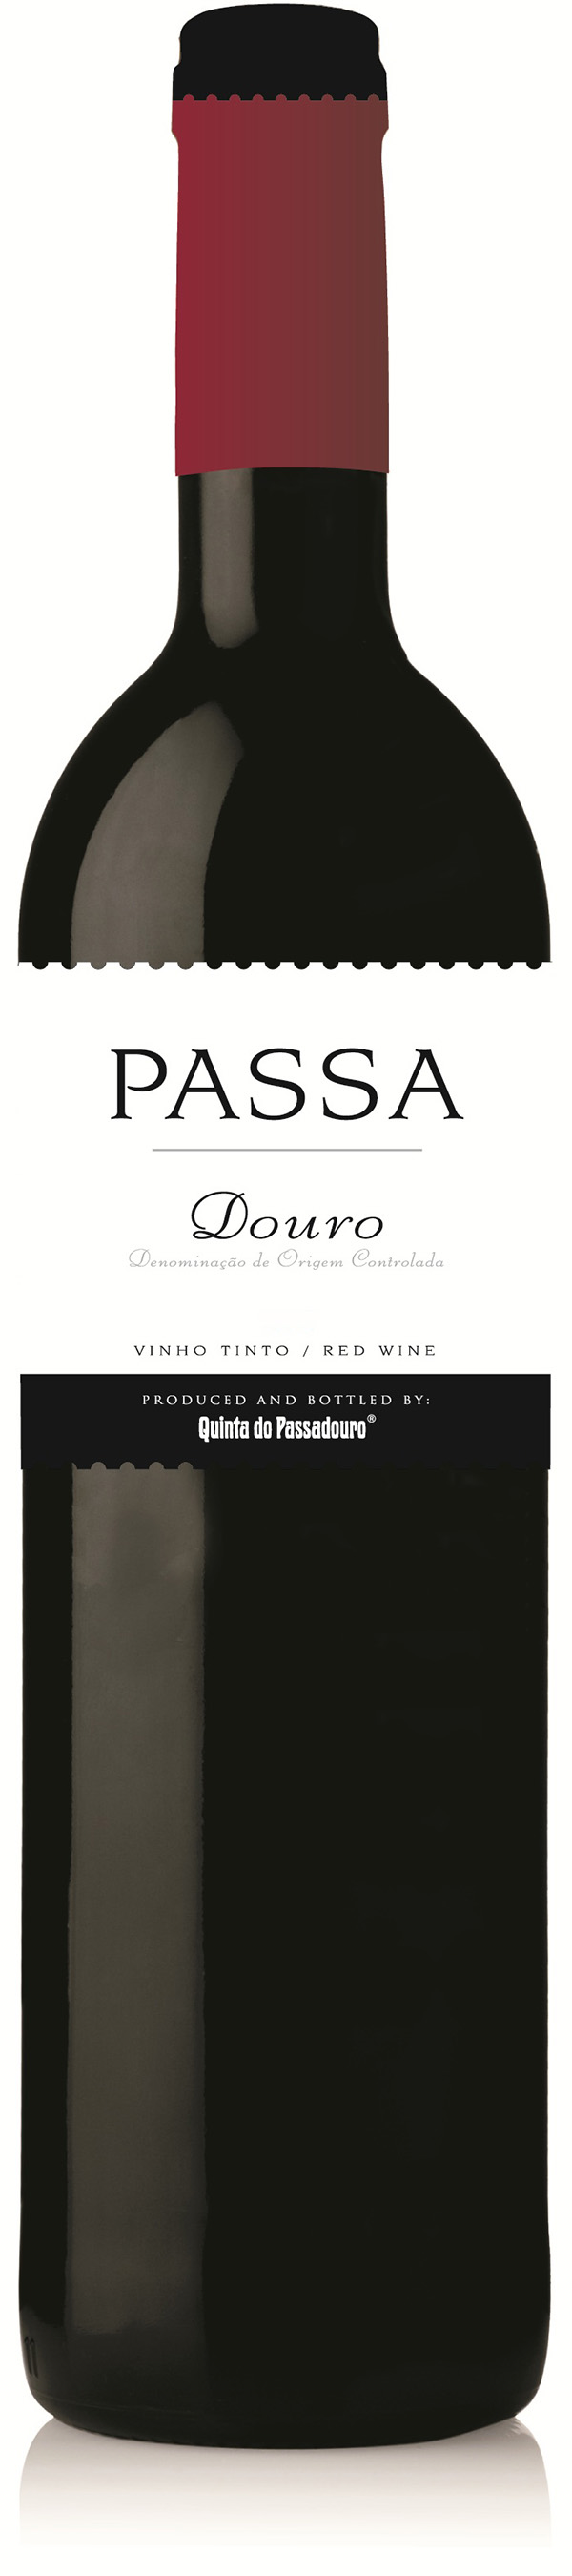 Passa Tinto   The Winebow Group